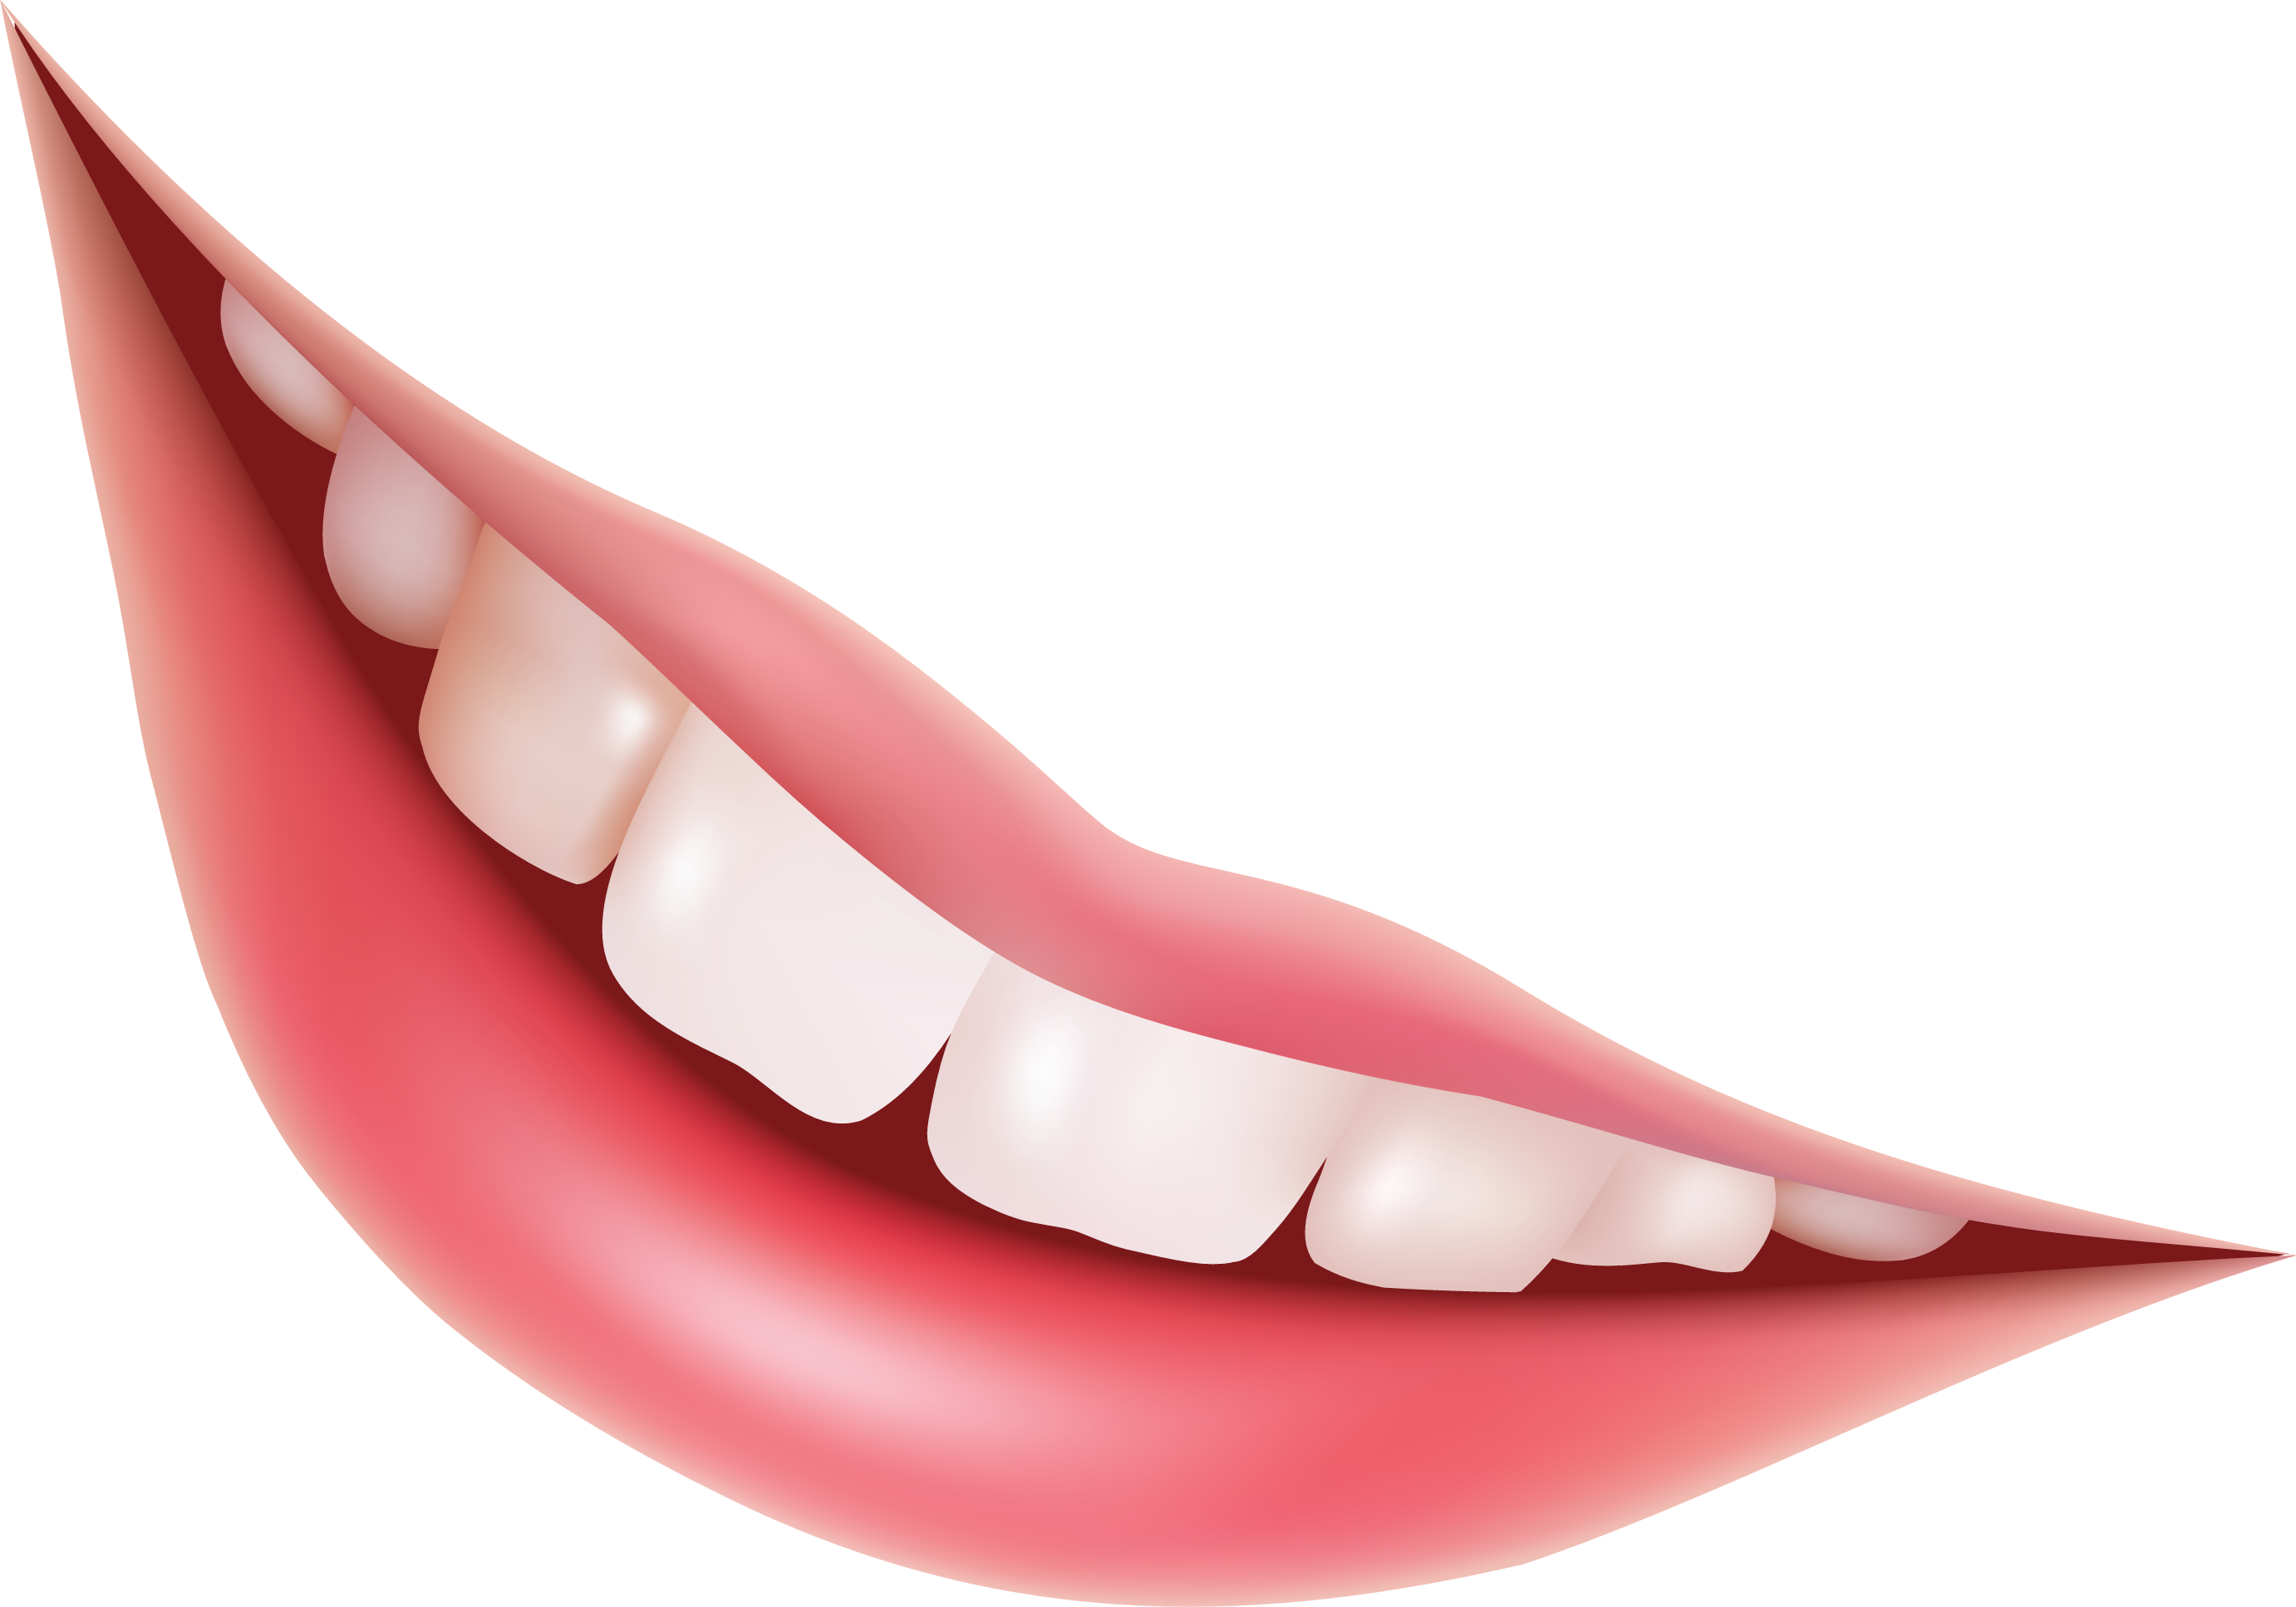 Lips Png Image - Smile Lips, Transparent background PNG HD thumbnail